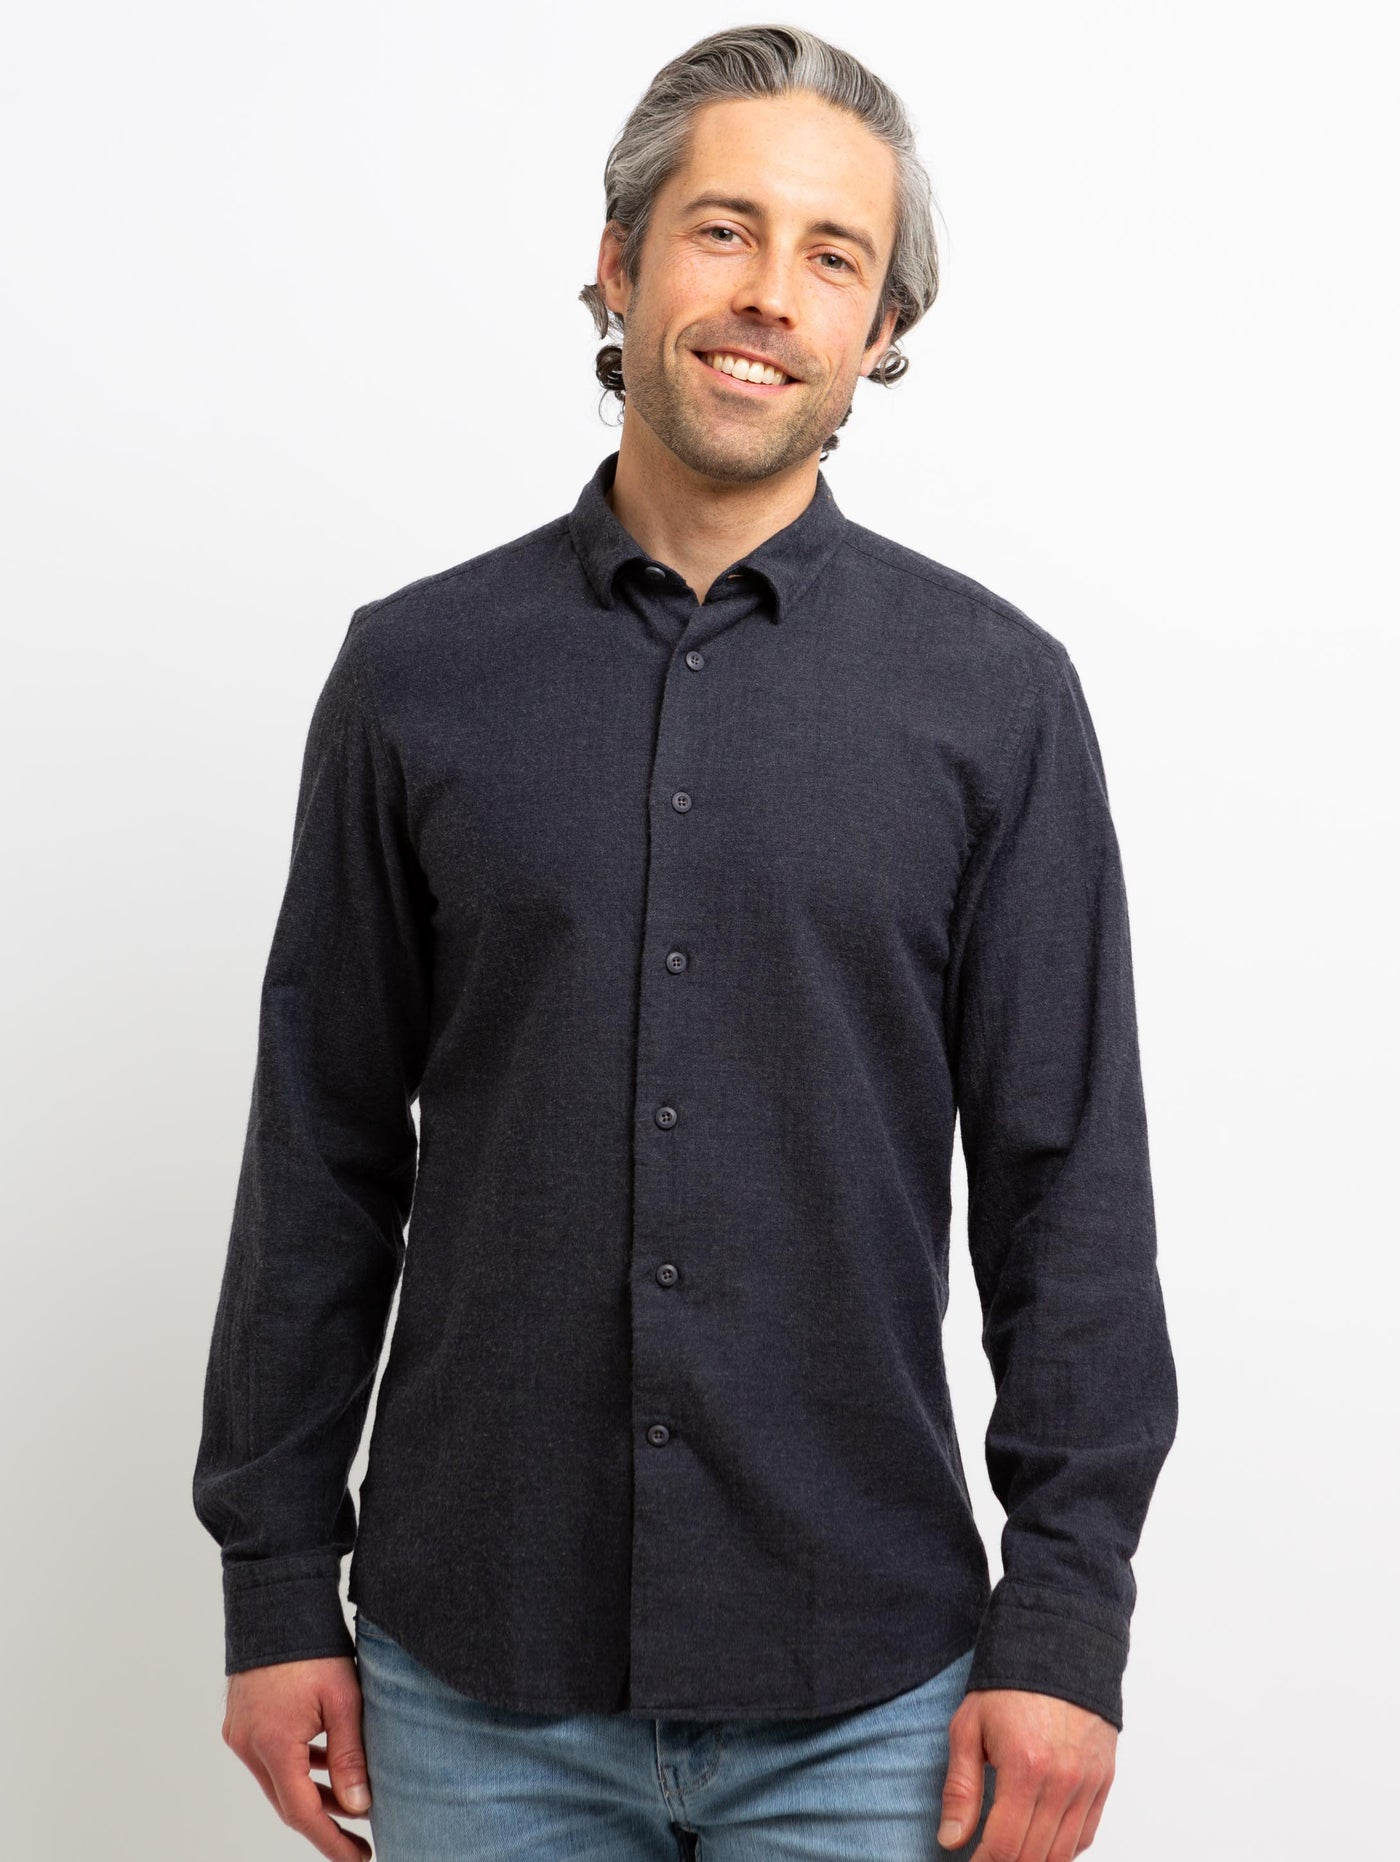 Redford Woven Button Down Shirt - Navy-Benson-Over the Rainbow